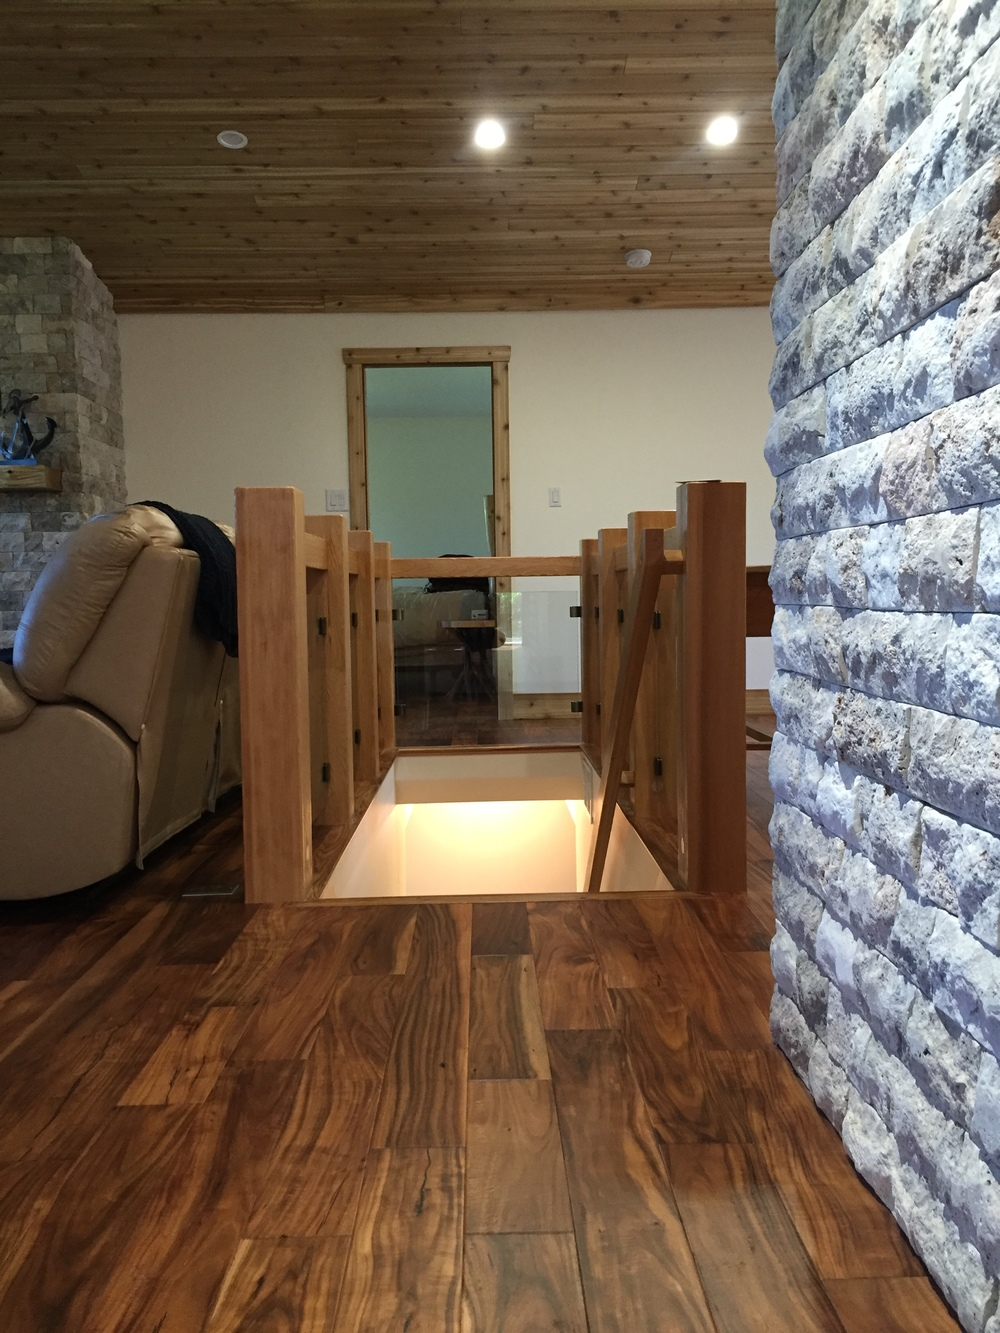 Cedar beam and glass stair surround, acacia hardwood, rustic stone feature wall.